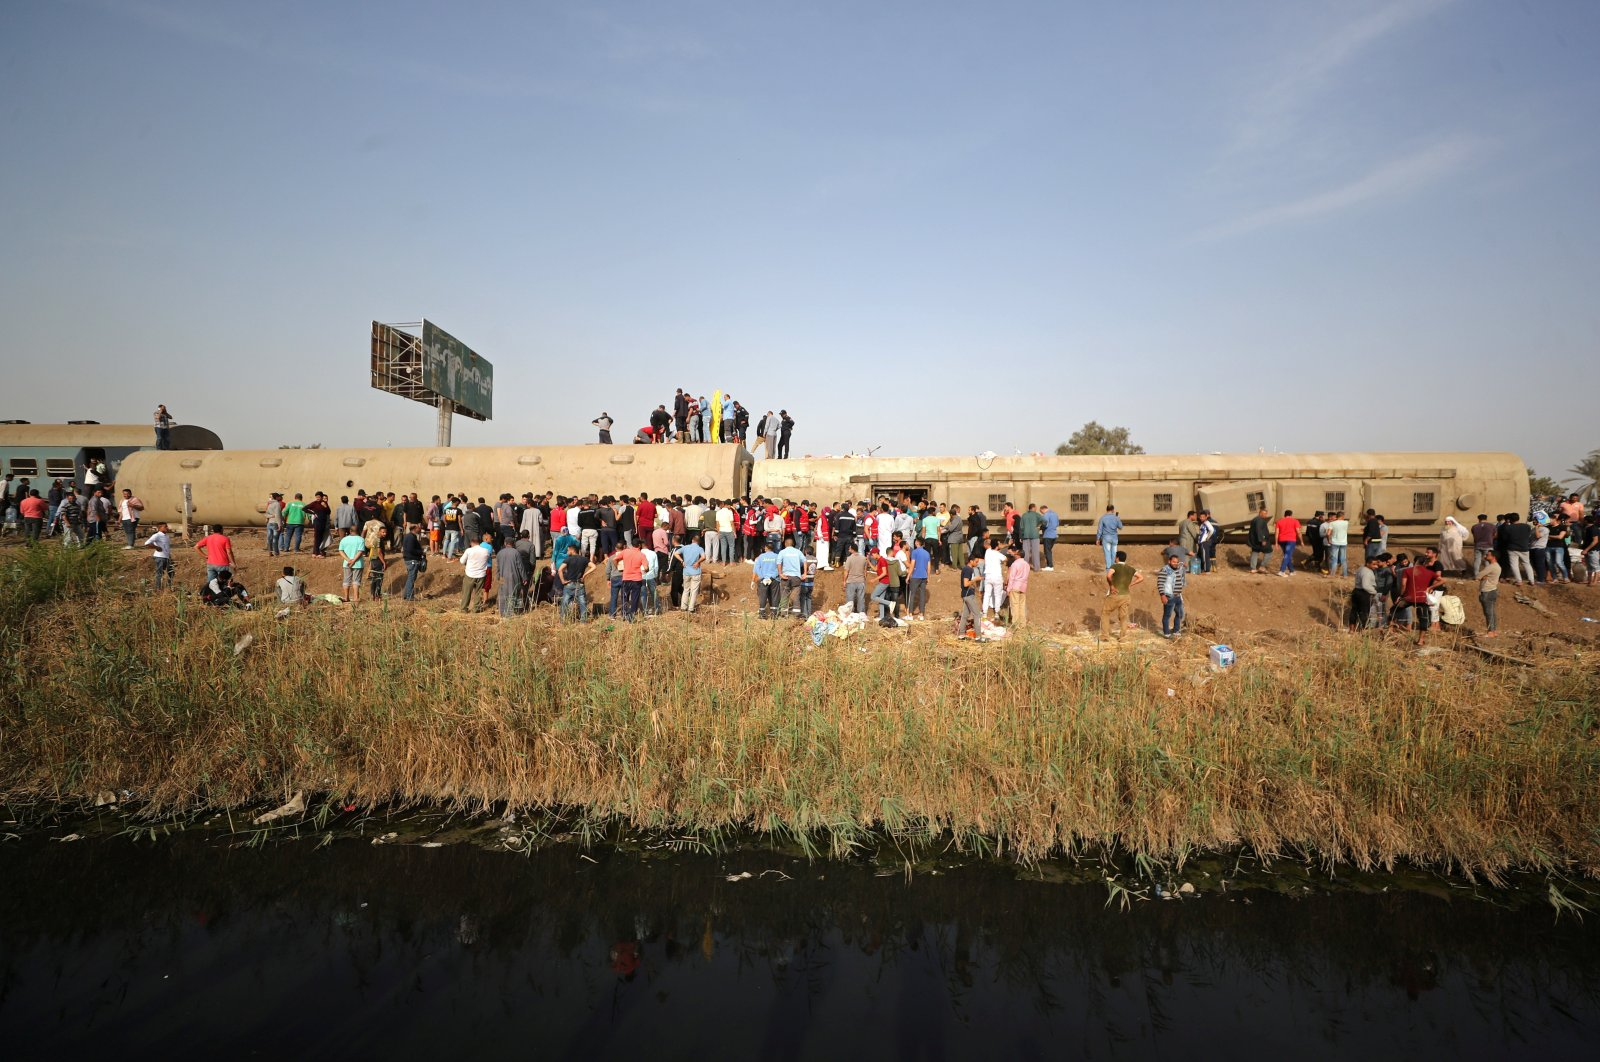 People gather at the site where train carriages derailed in Qalyubia province, north of Cairo, Egypt, April 18, 2021. (Reuters Photo)